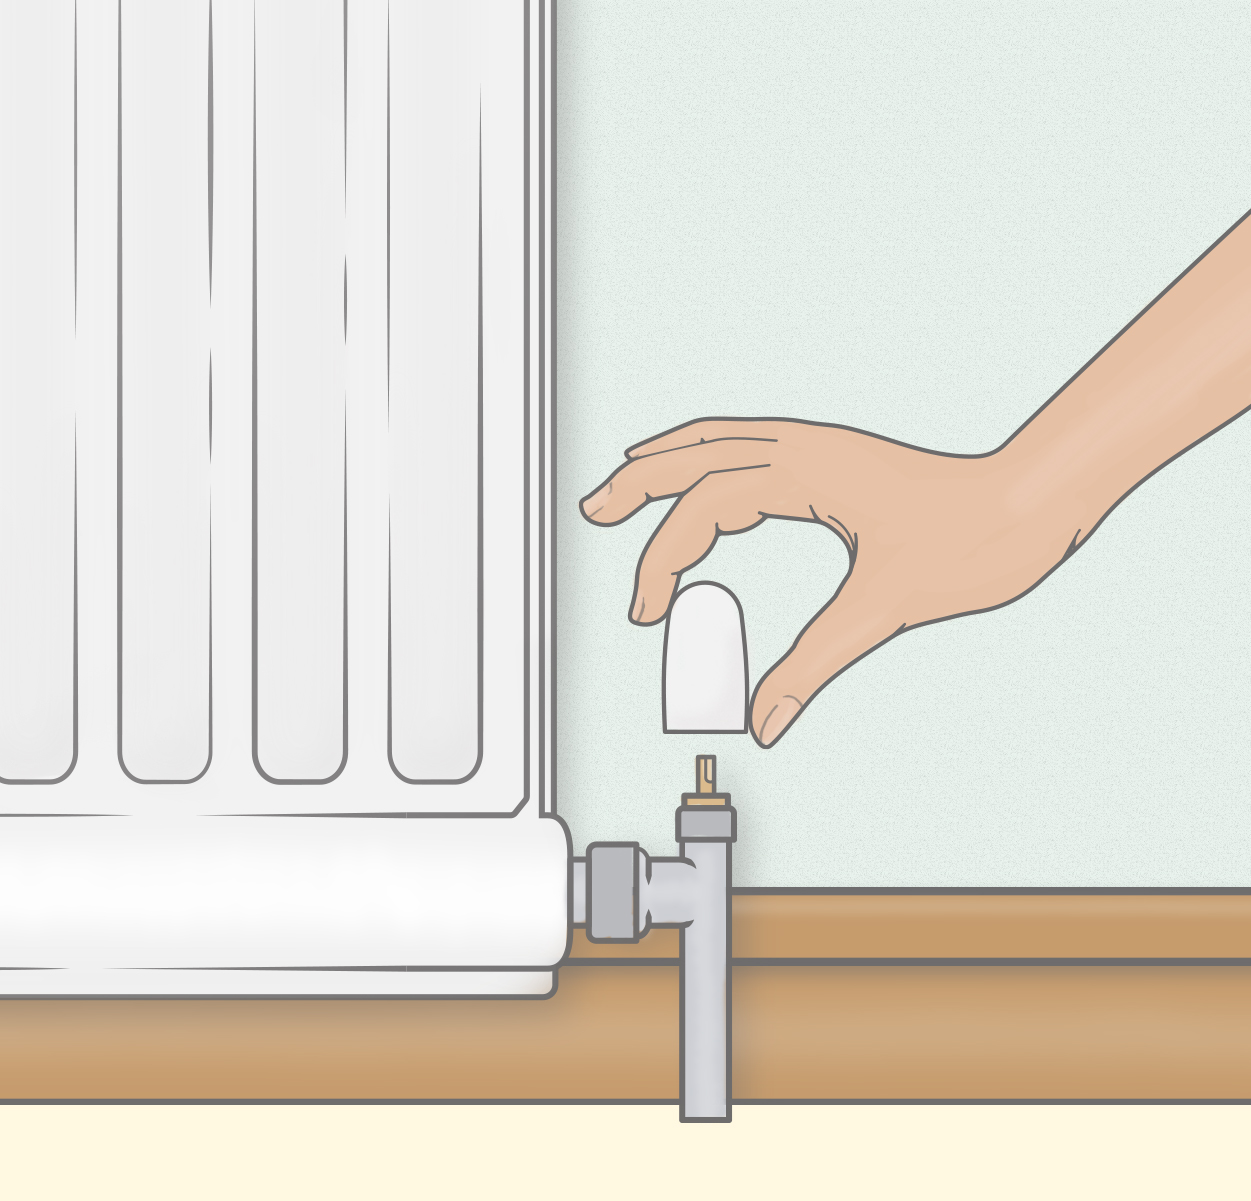 How To Fix A Leaky Radiator | BestHeating Advice Centre